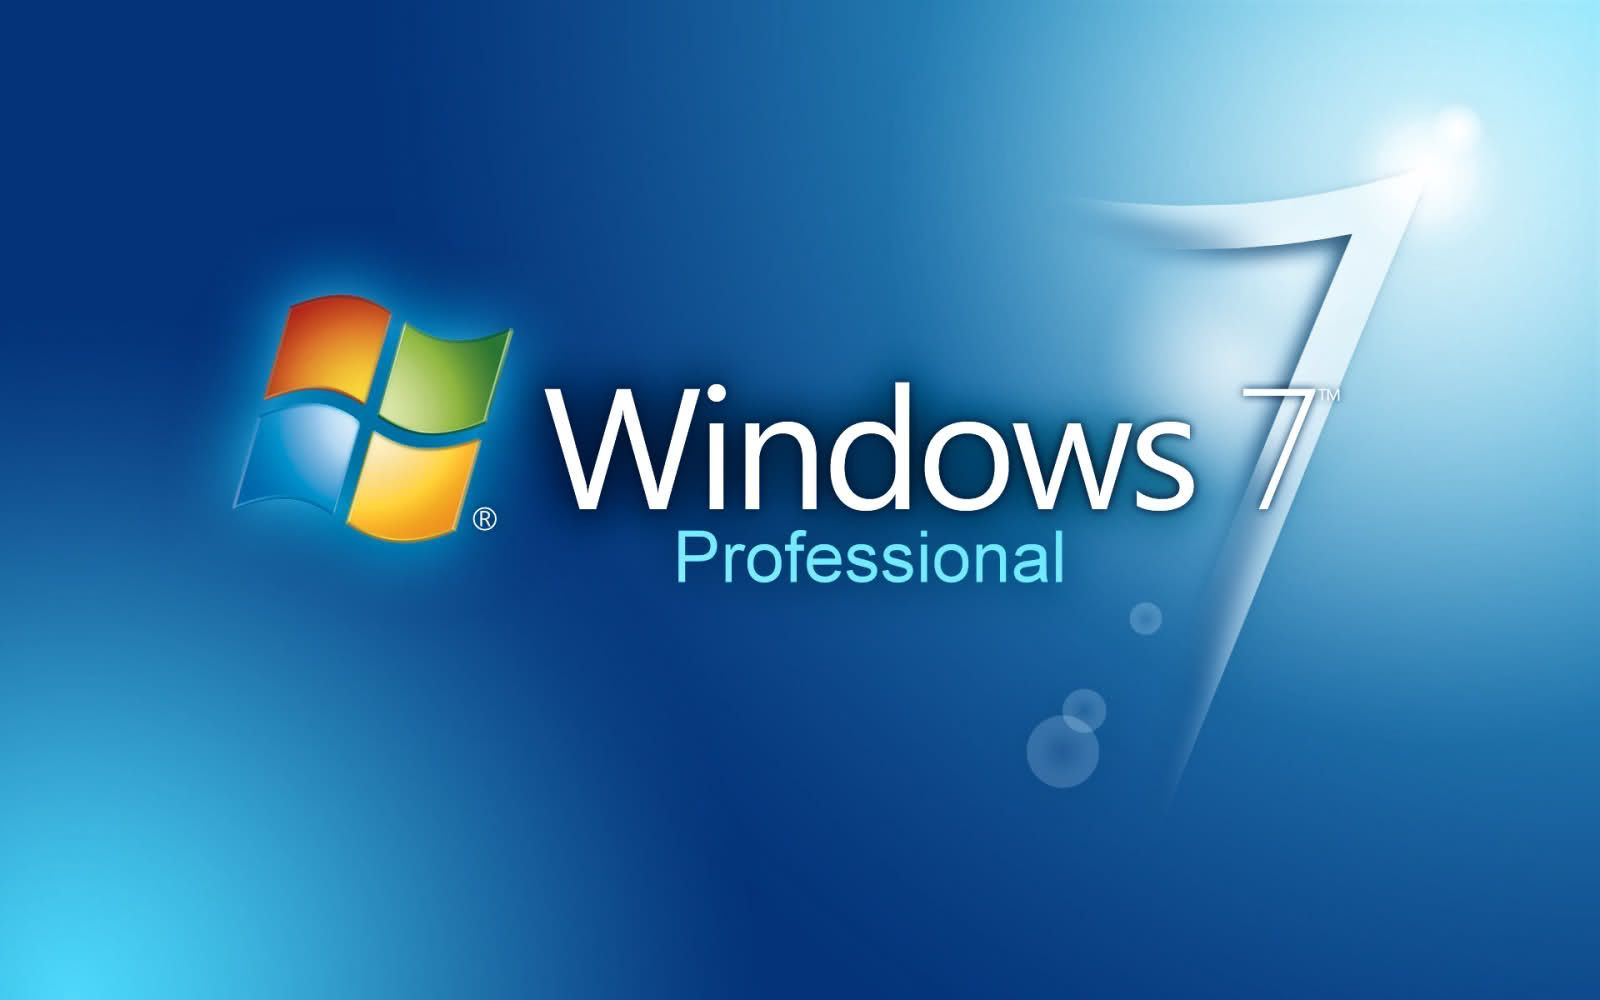 Windows 7 Professional Wallpapers Top Free Windows 7 Professional Backgrounds Wallpaperaccess